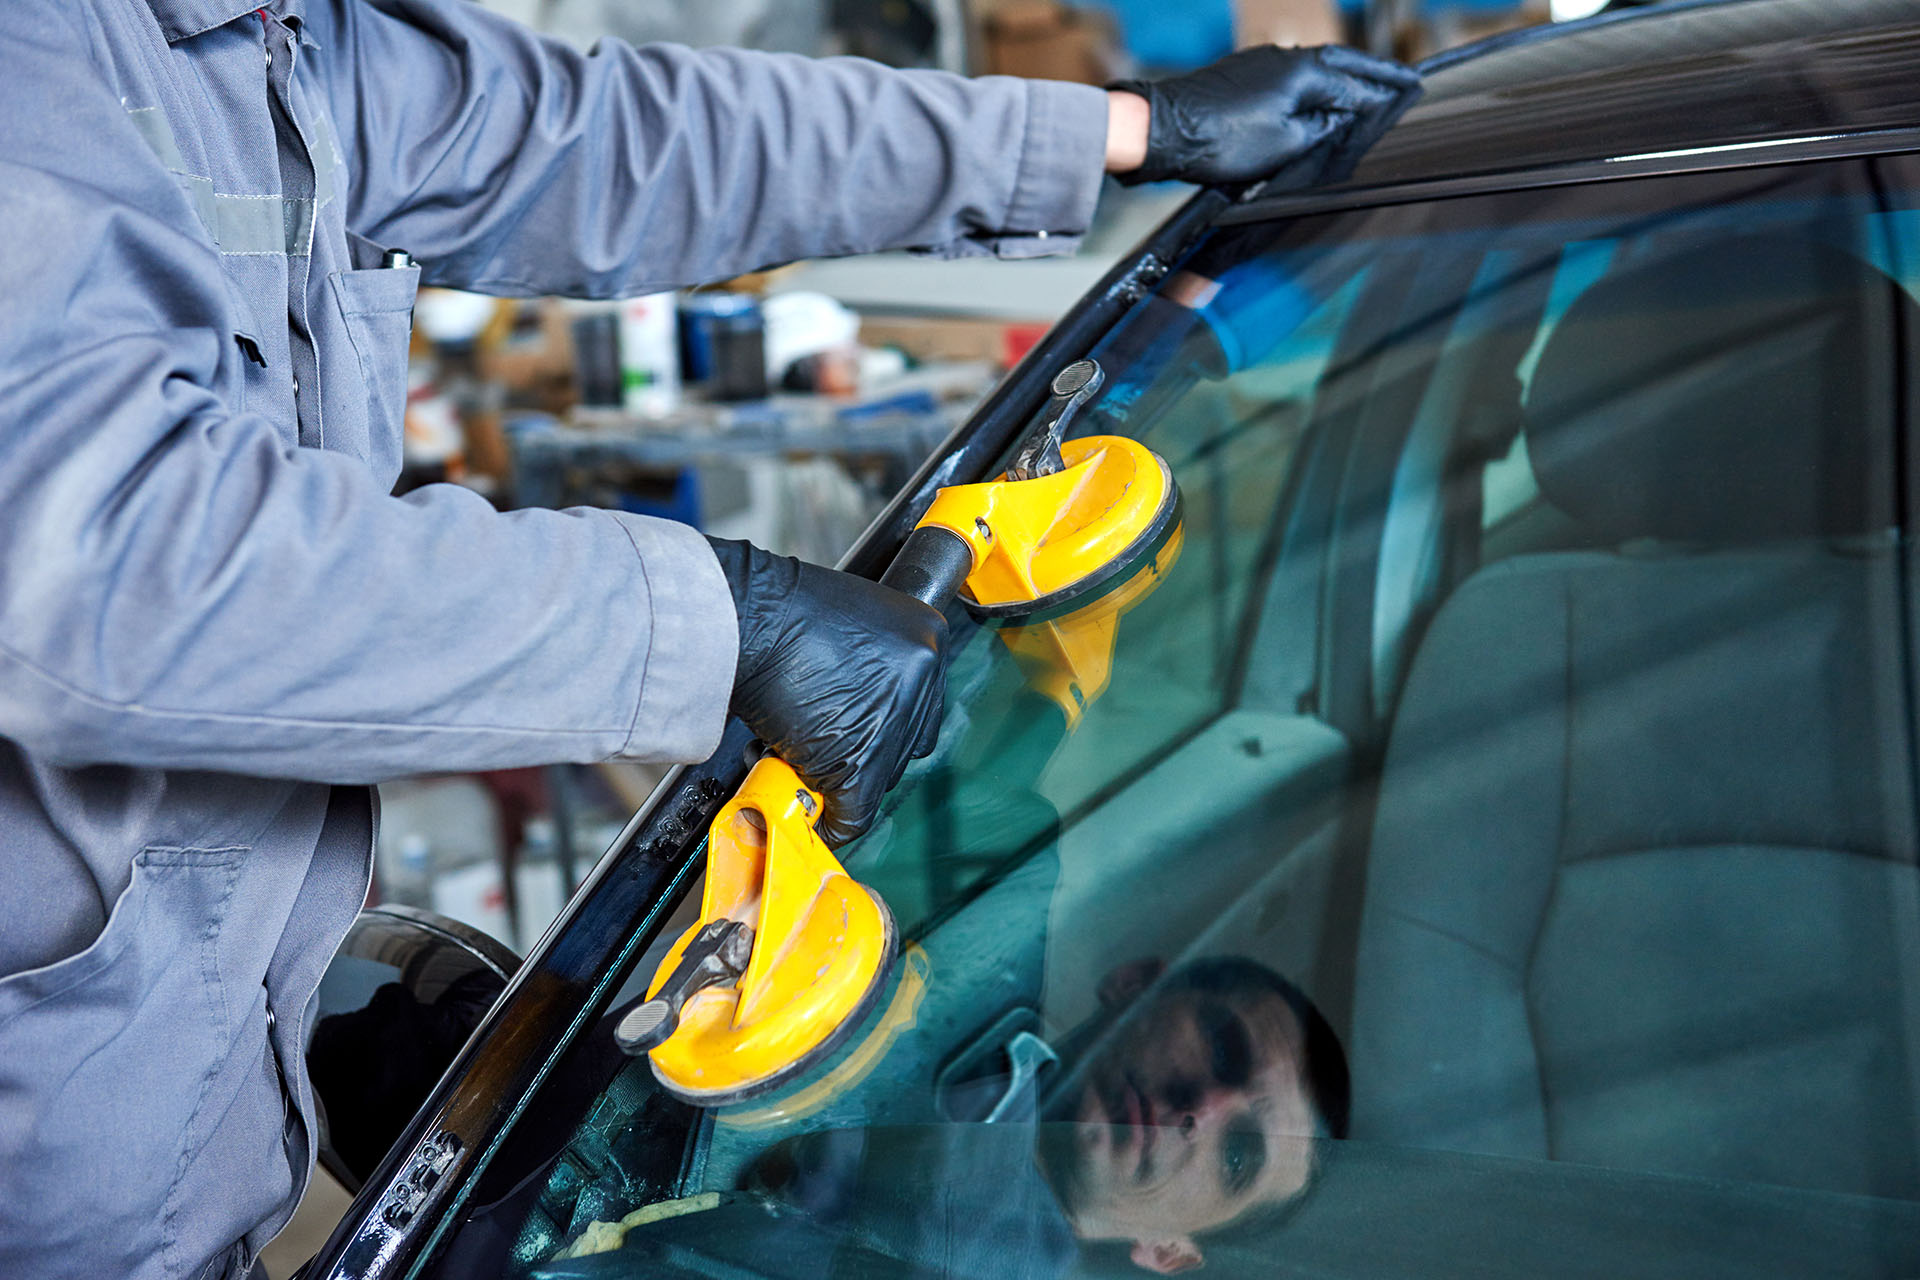 windshield replacement services in Nanaimo BC